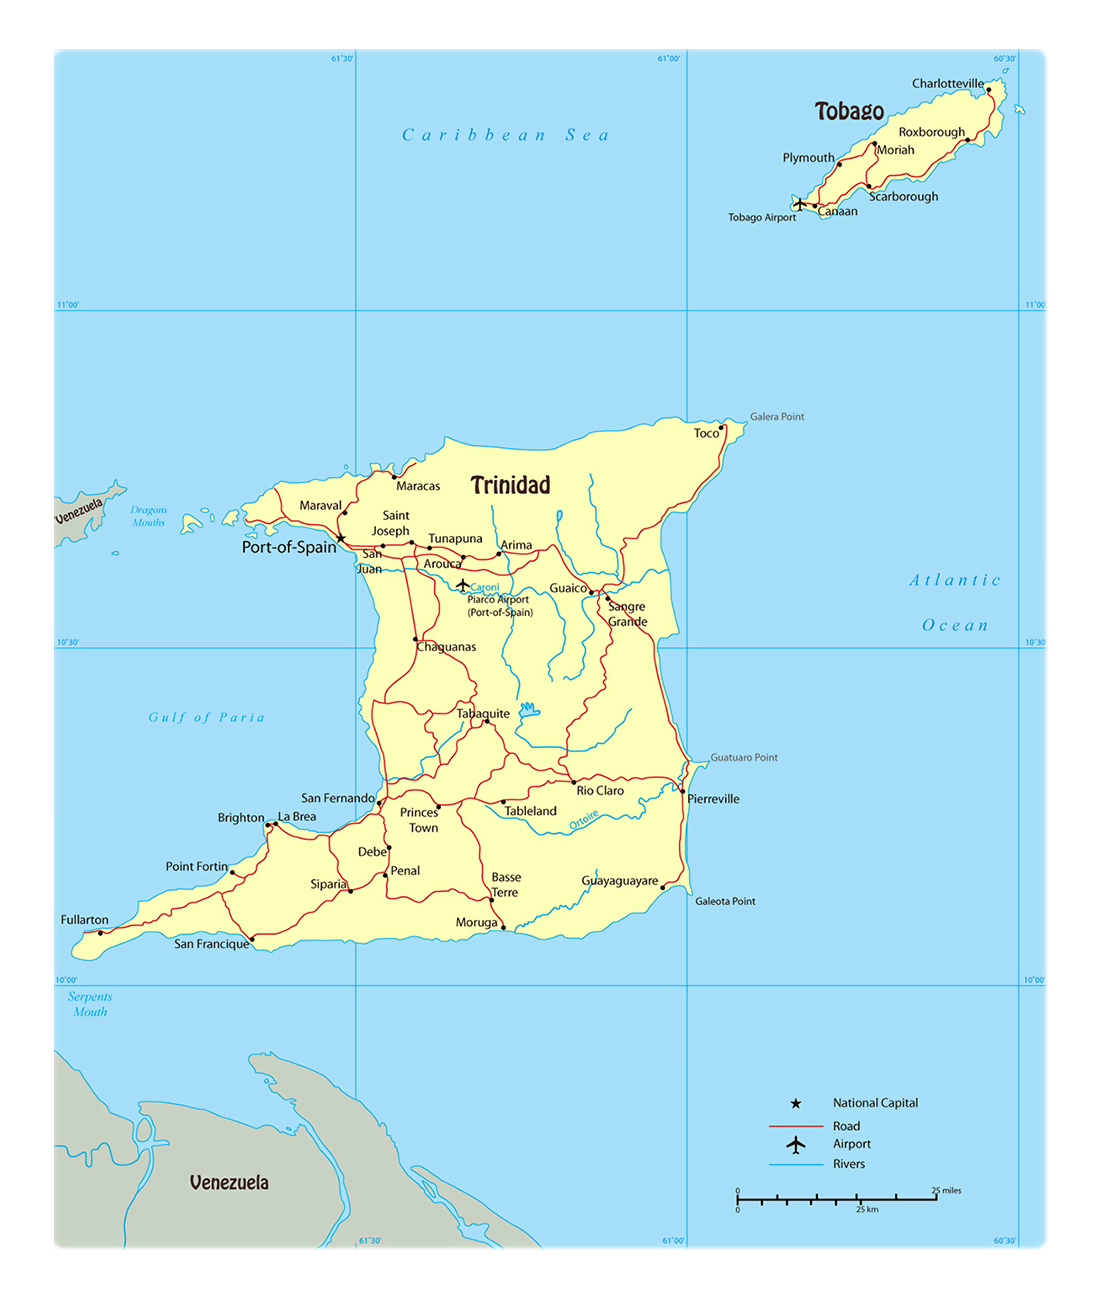 Large political map of Trinidad and Tobago with roads ... on map of north america rail, map of north america water, map of north america agriculture, map of north america food, map of north america refineries, map of north america time zones, map of north america waterways, map of north america auto plants, usa map airports, map china airports, map of north america national parks, map of north america ports, central america airports, map of north america rivers, map of north america cement plants, america's airports, map of north america railway,